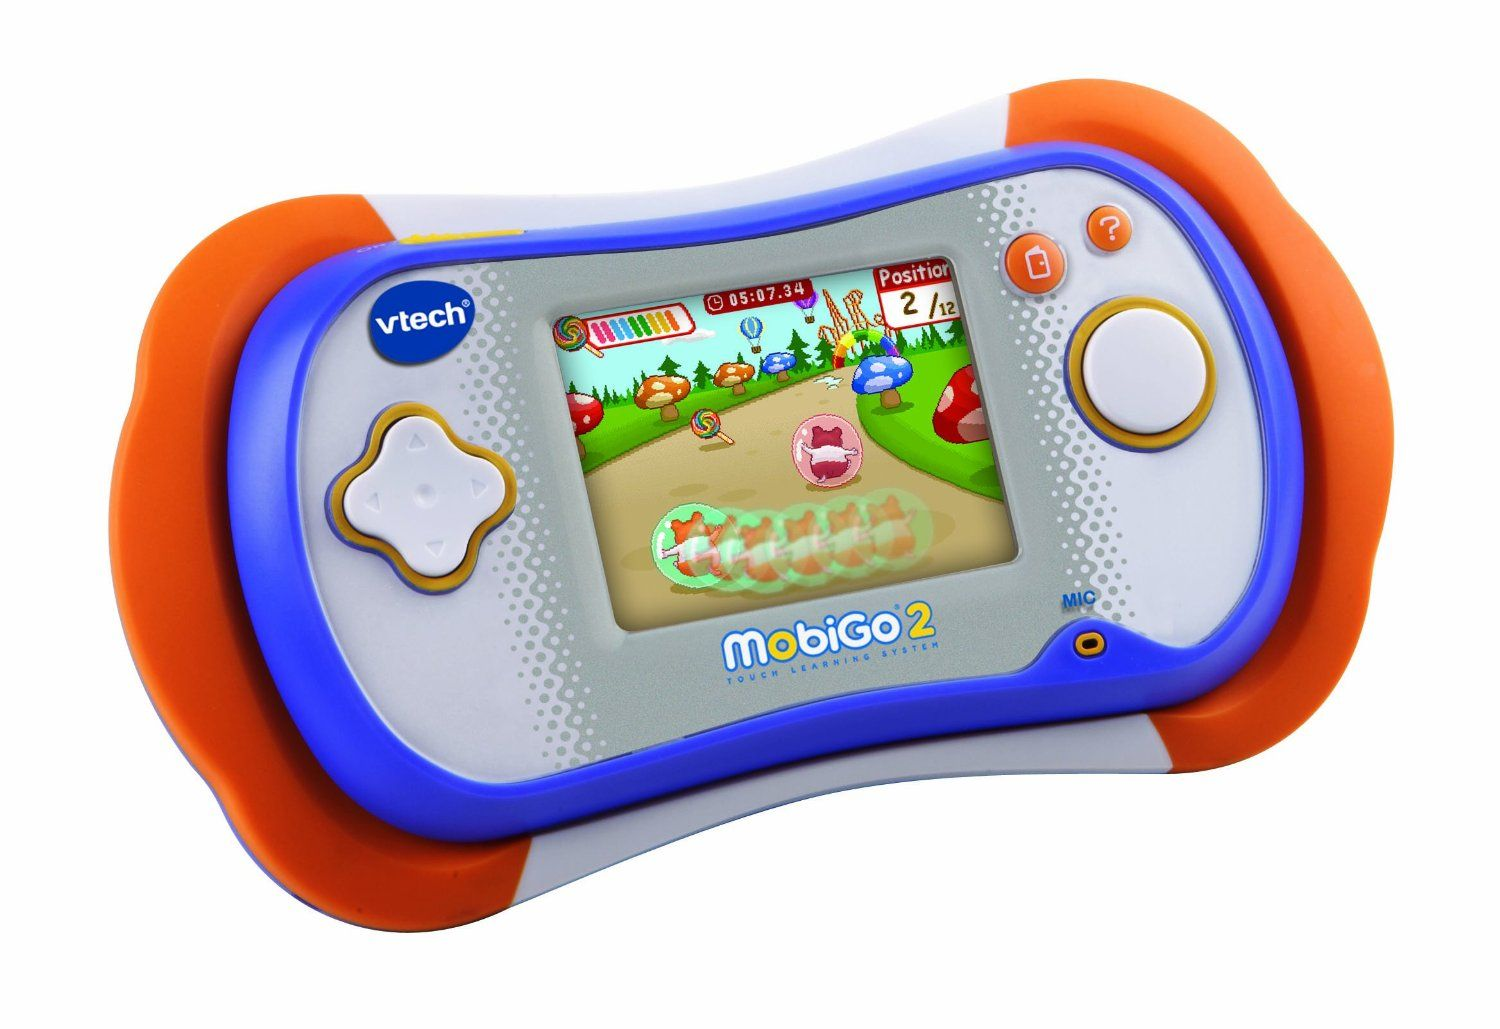 Tech Gadgets for Babies VTech MobiGo 2 Touch Learning